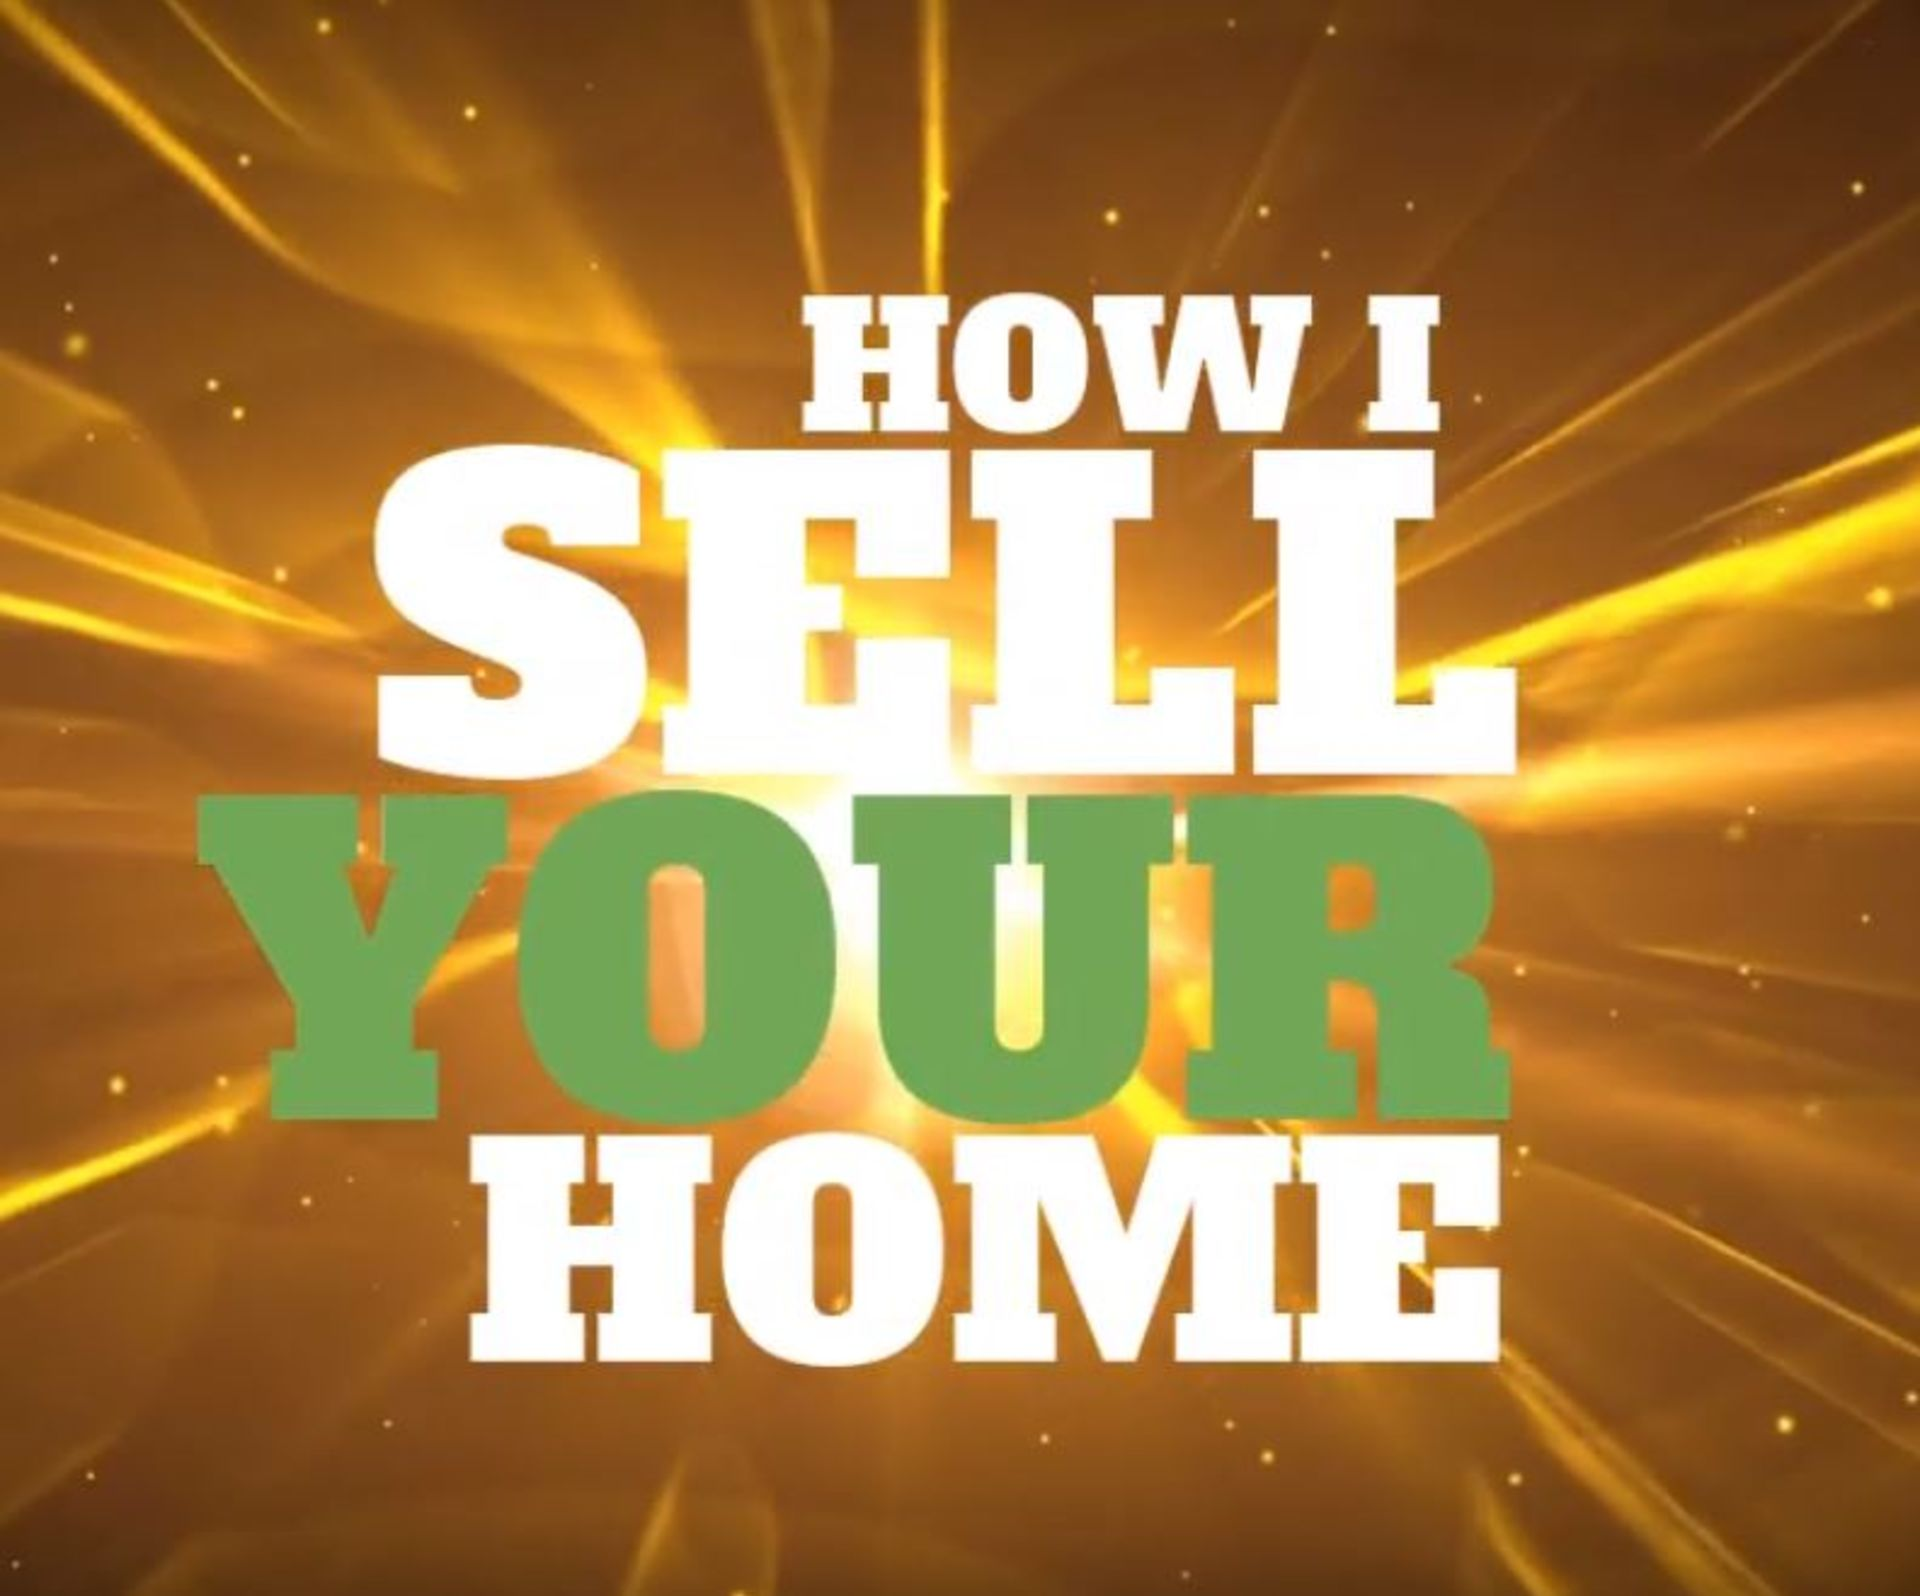 How I sell your home